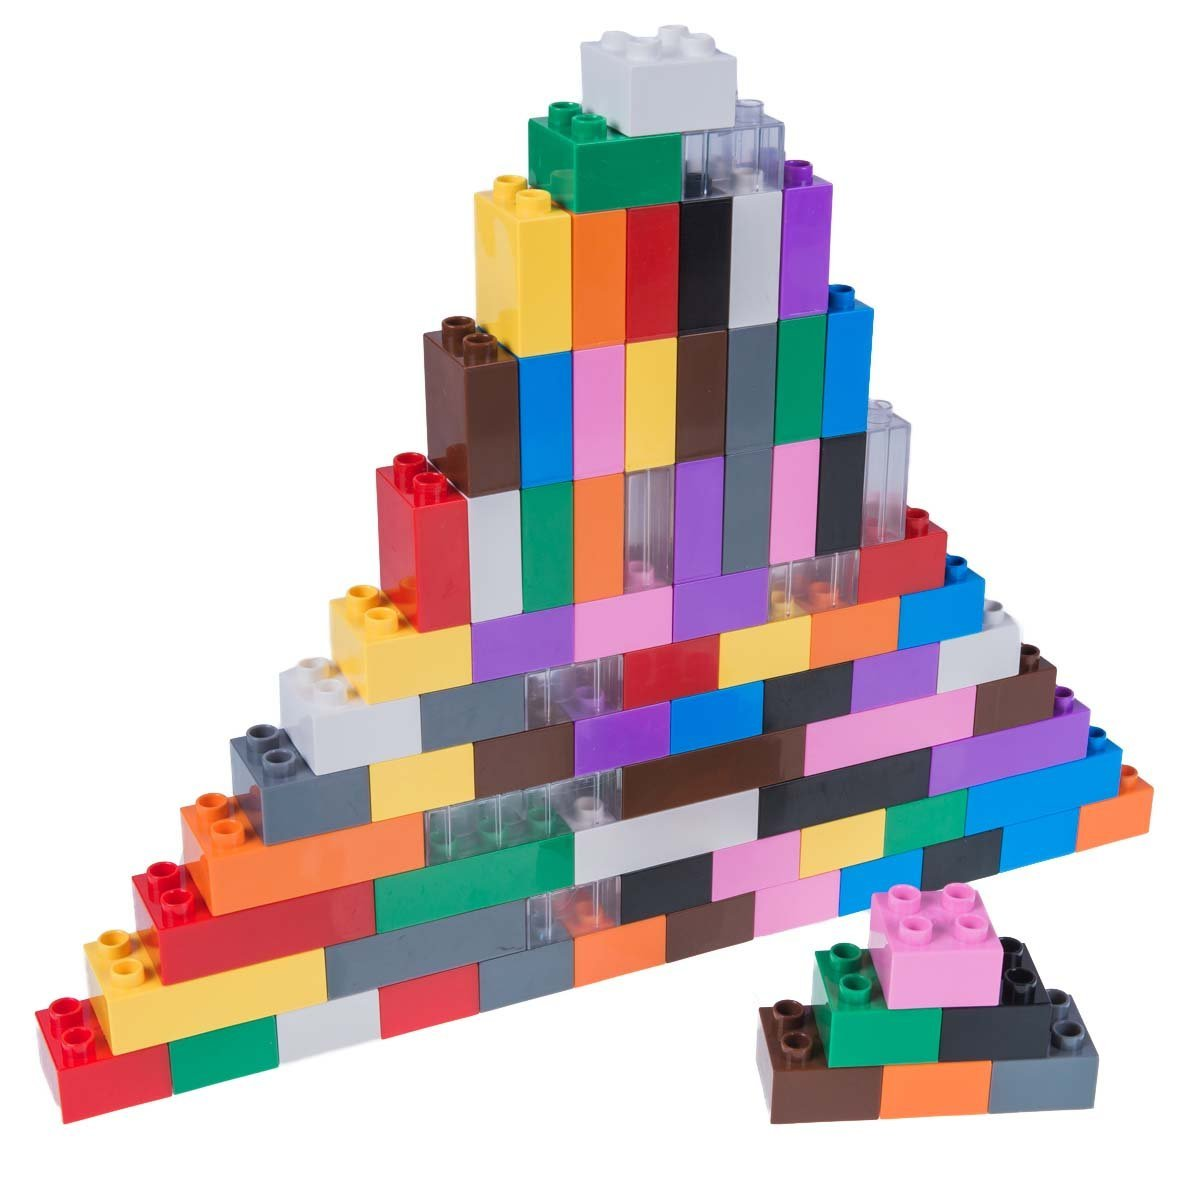 Classic Big Briks by Strictly Briks | Building Brick Set 100% Compatible with All Major Brands | Large Pegs for Toddlers | Ages 3+ | Premium Building Bricks in Rainbow Colors | 84 Pieces Review